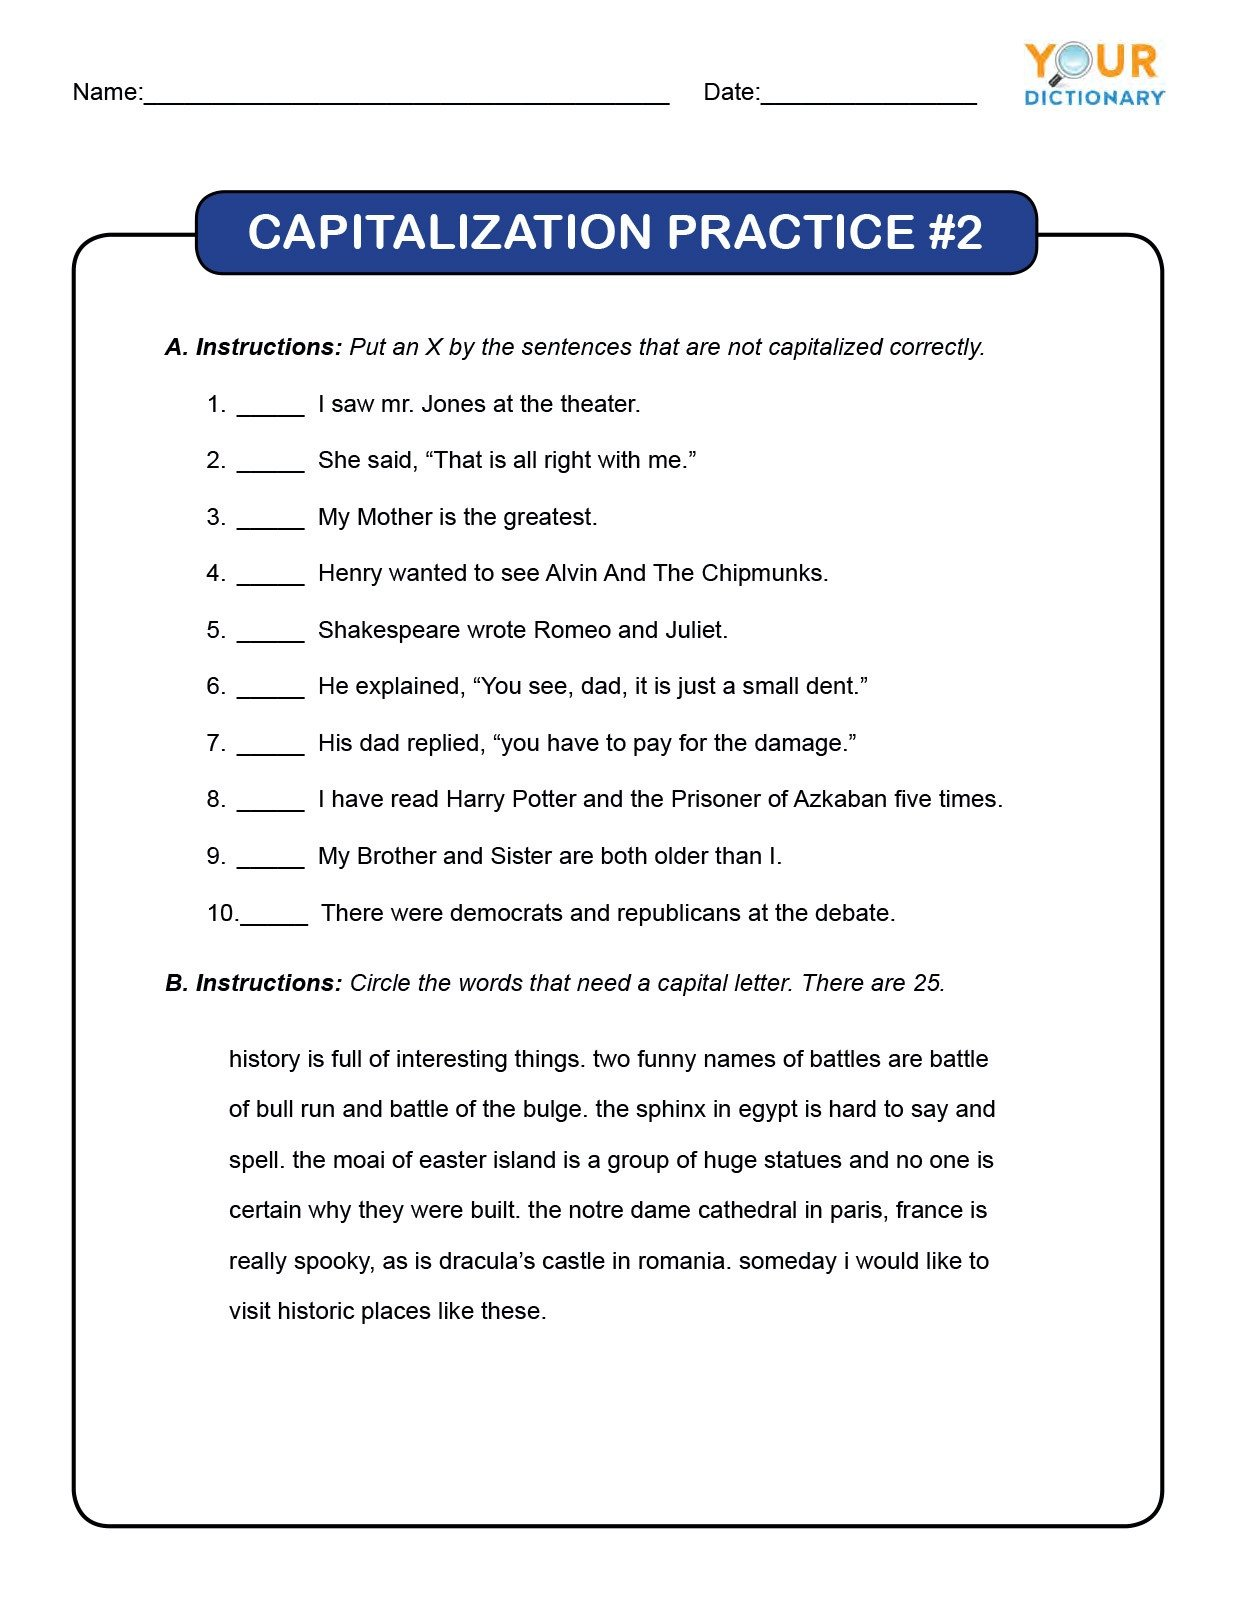 thumb capitalization practice2se